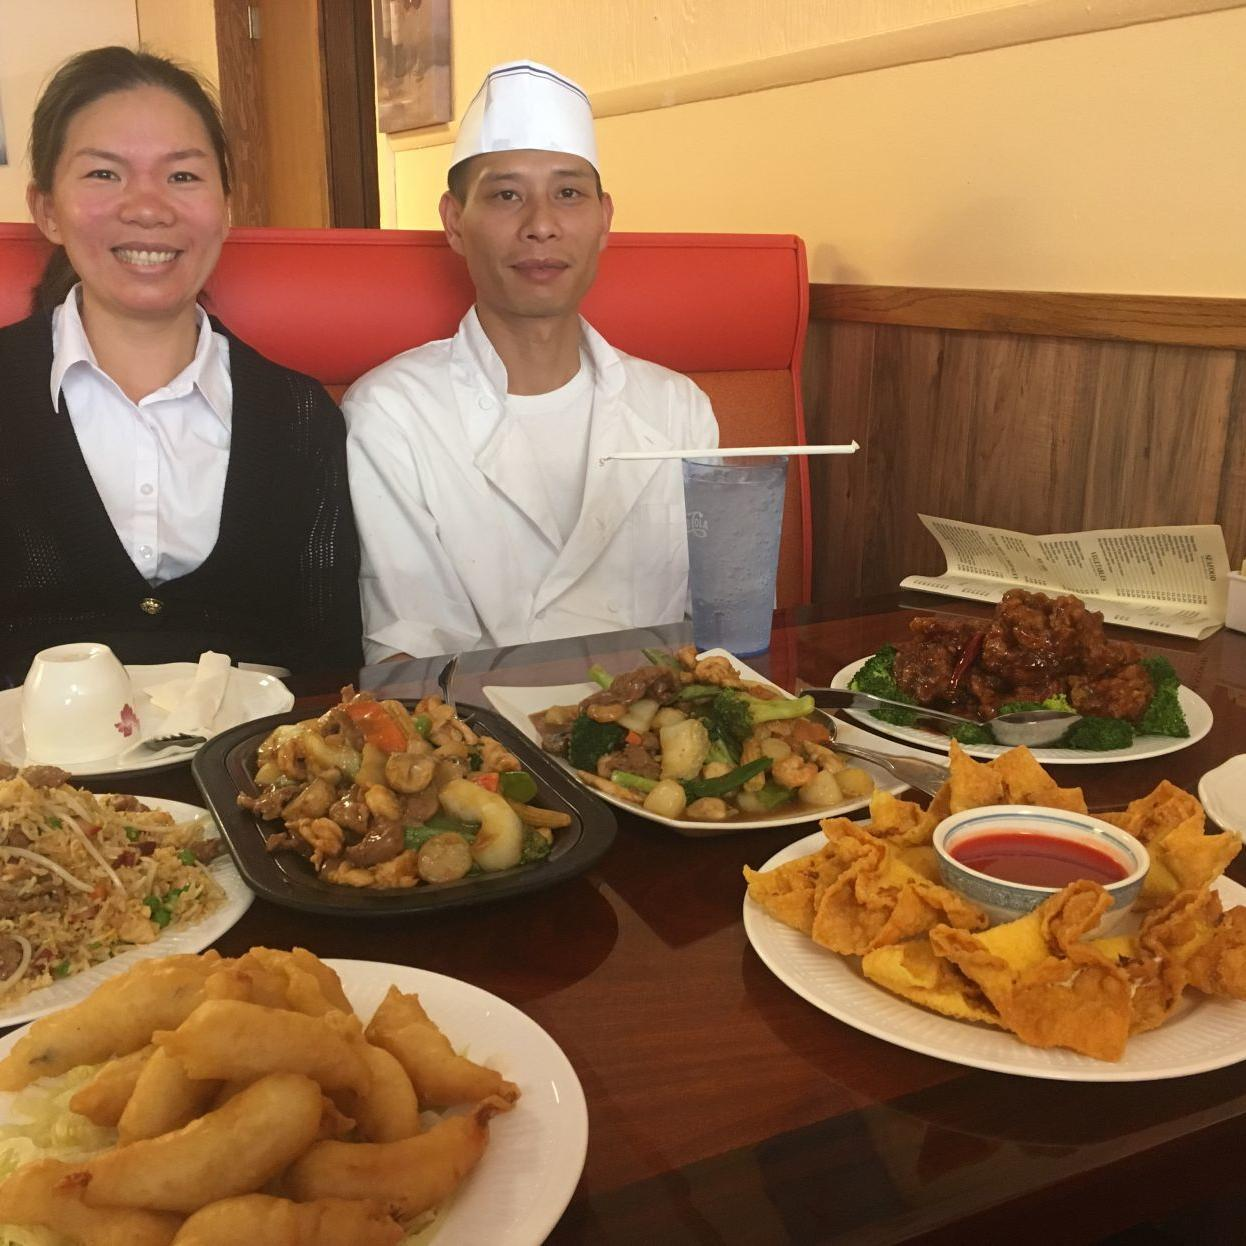 New Chinese Restaurant On Commerce Wants To Make A Fresh Start Local Tdn Com